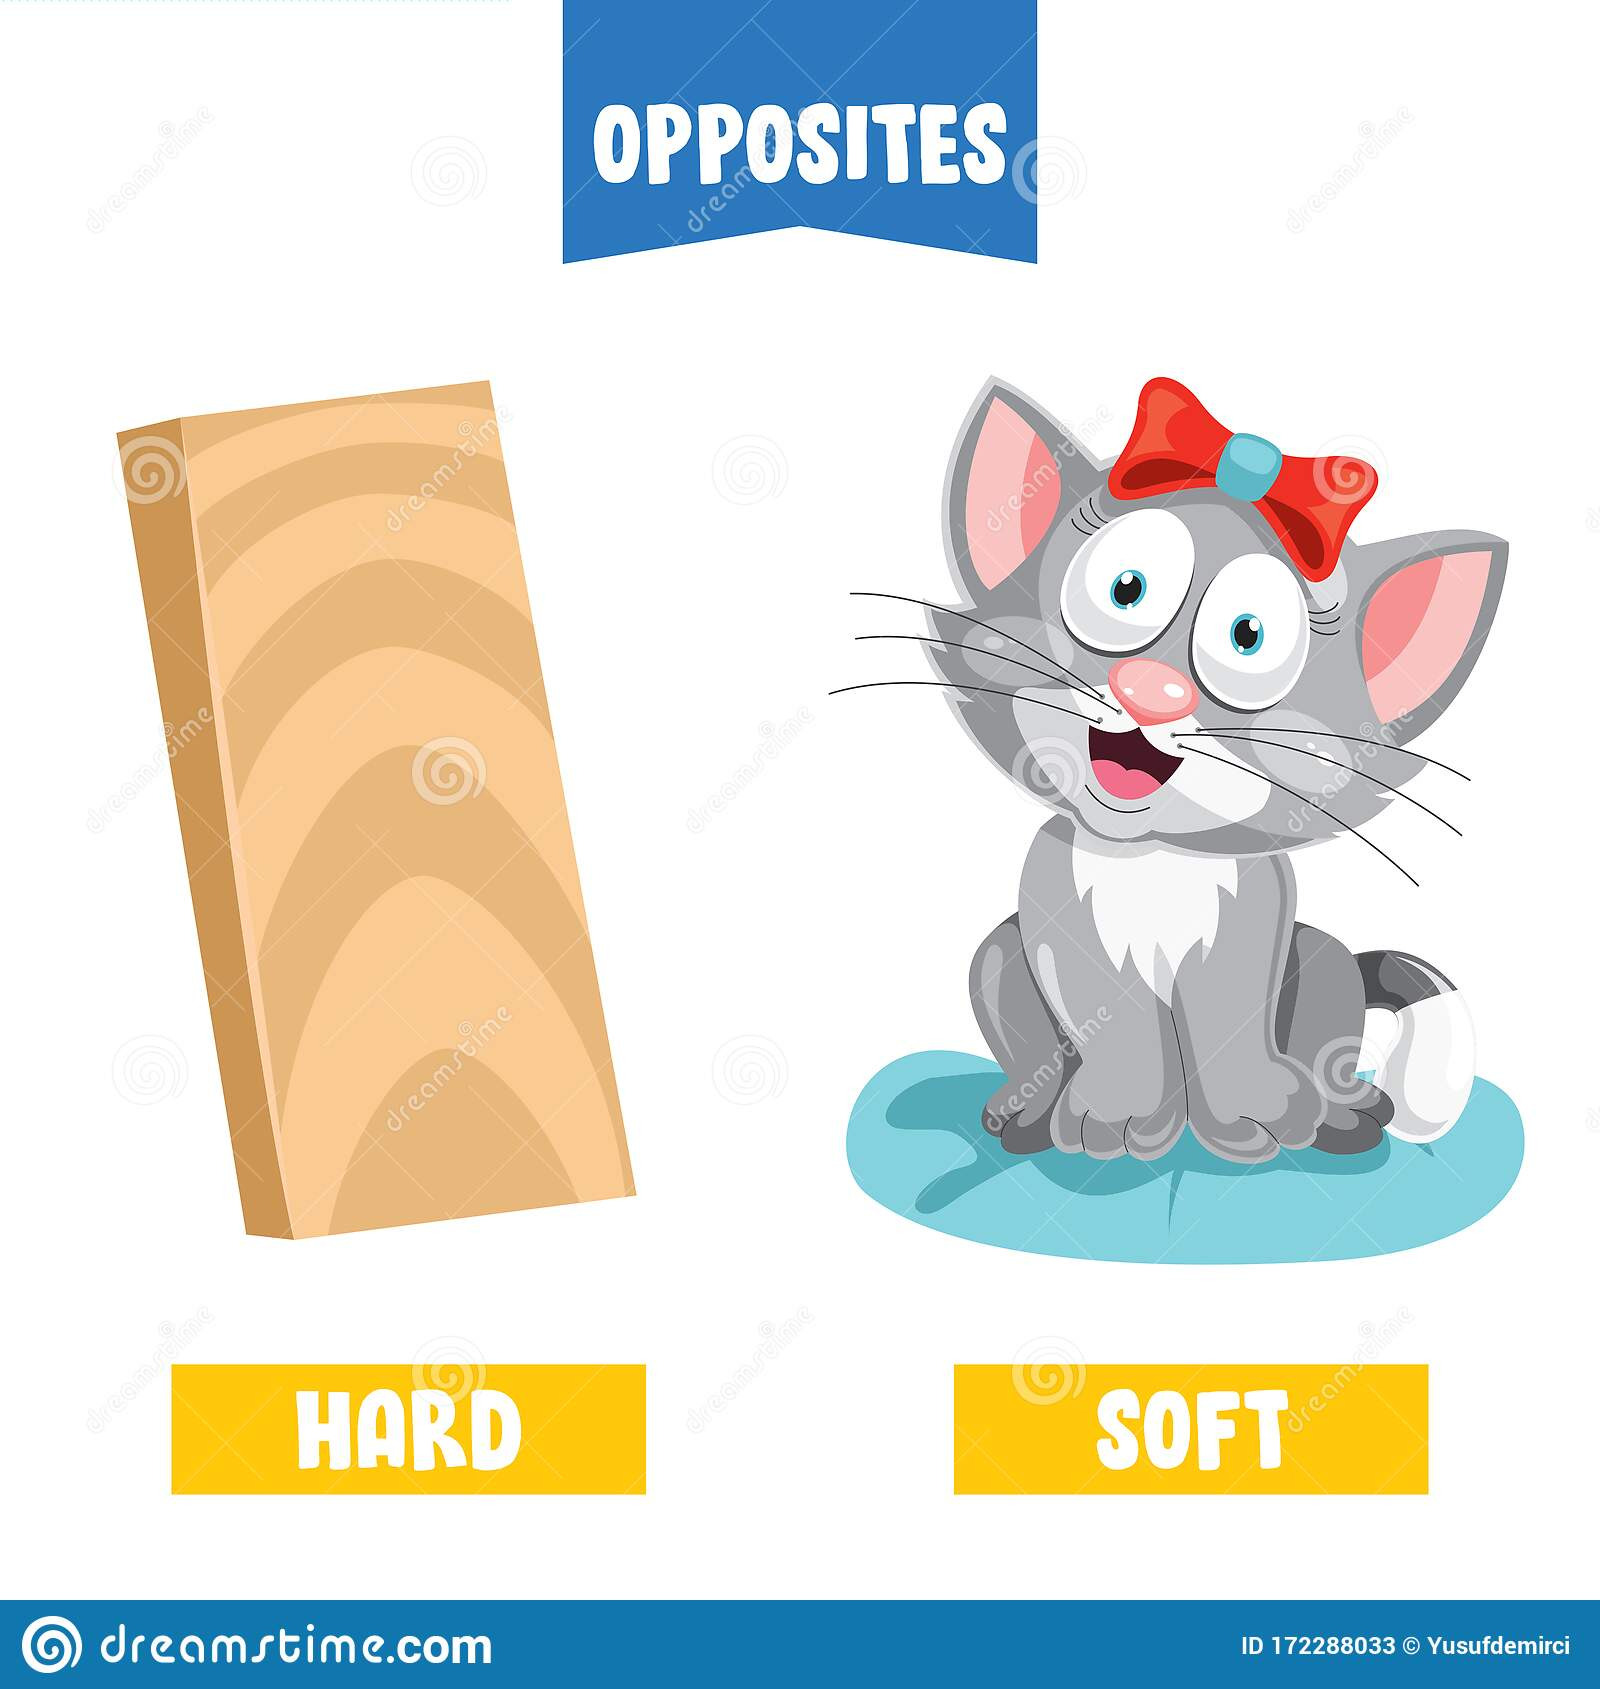 Opposite Adjectives Soft And Hard Vector Illustration